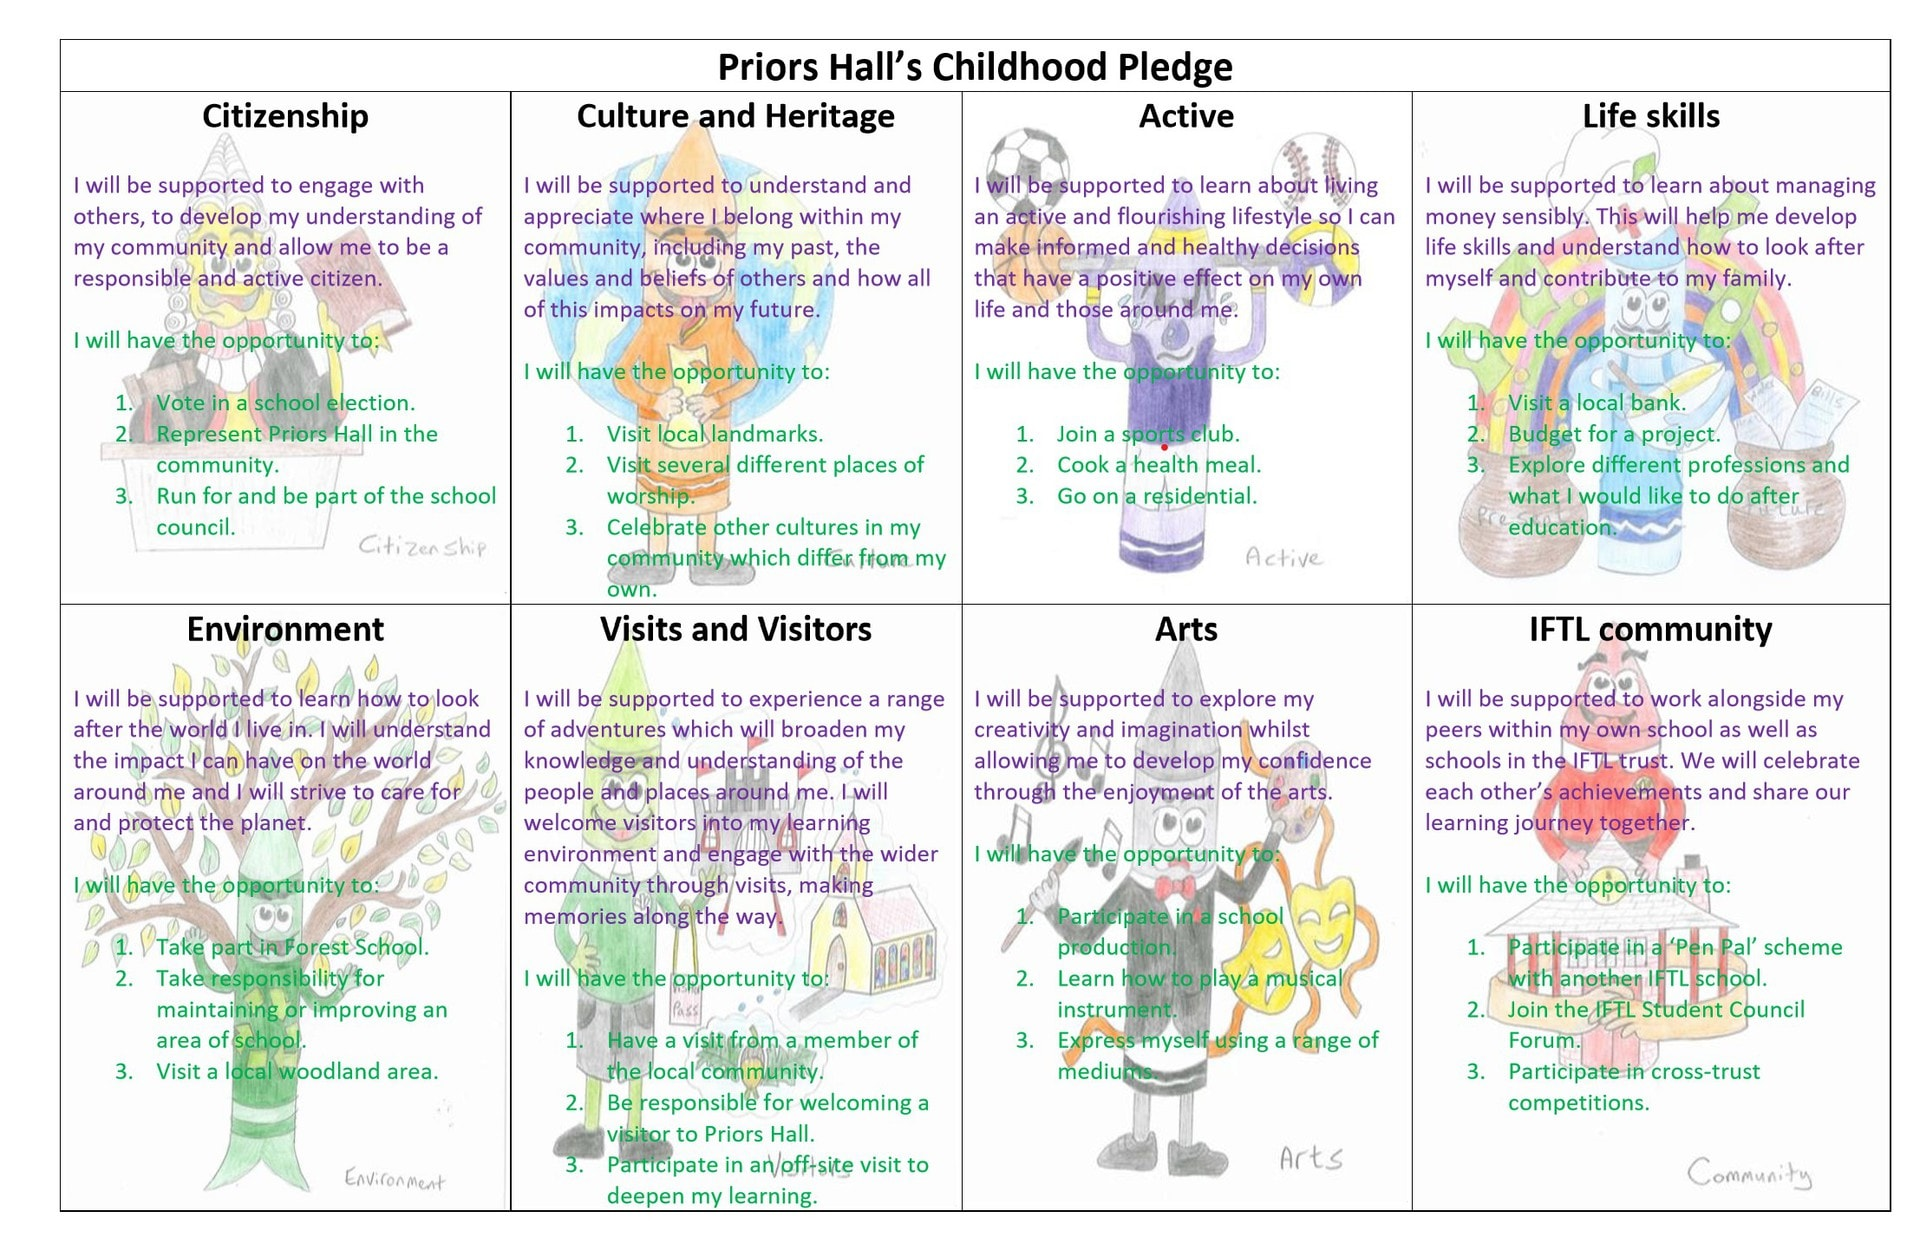 childhhod pledge